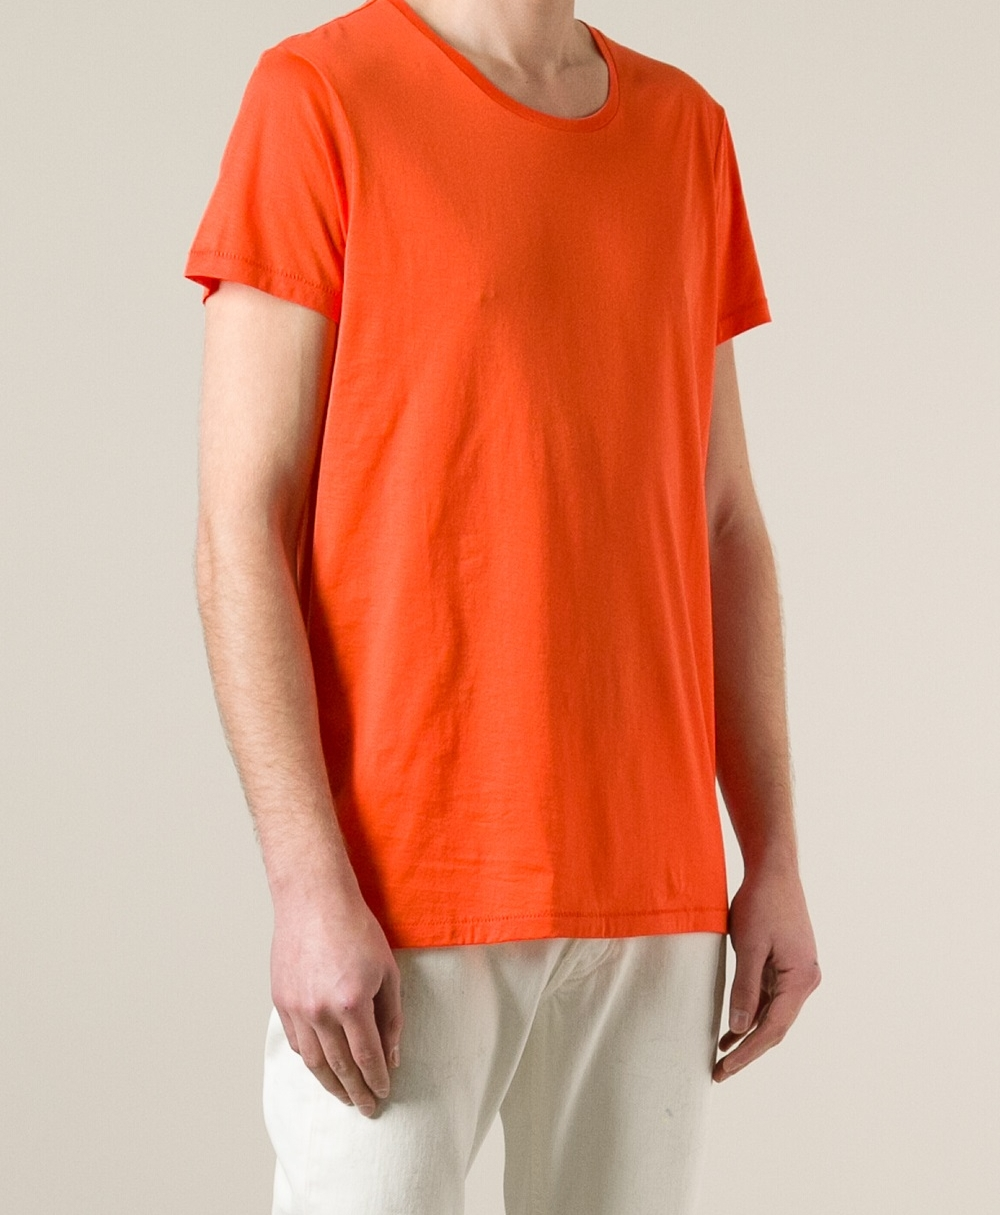 acne-yellow-classic-t-shirt-product-1-16784138-2-642980009-normal.jpeg